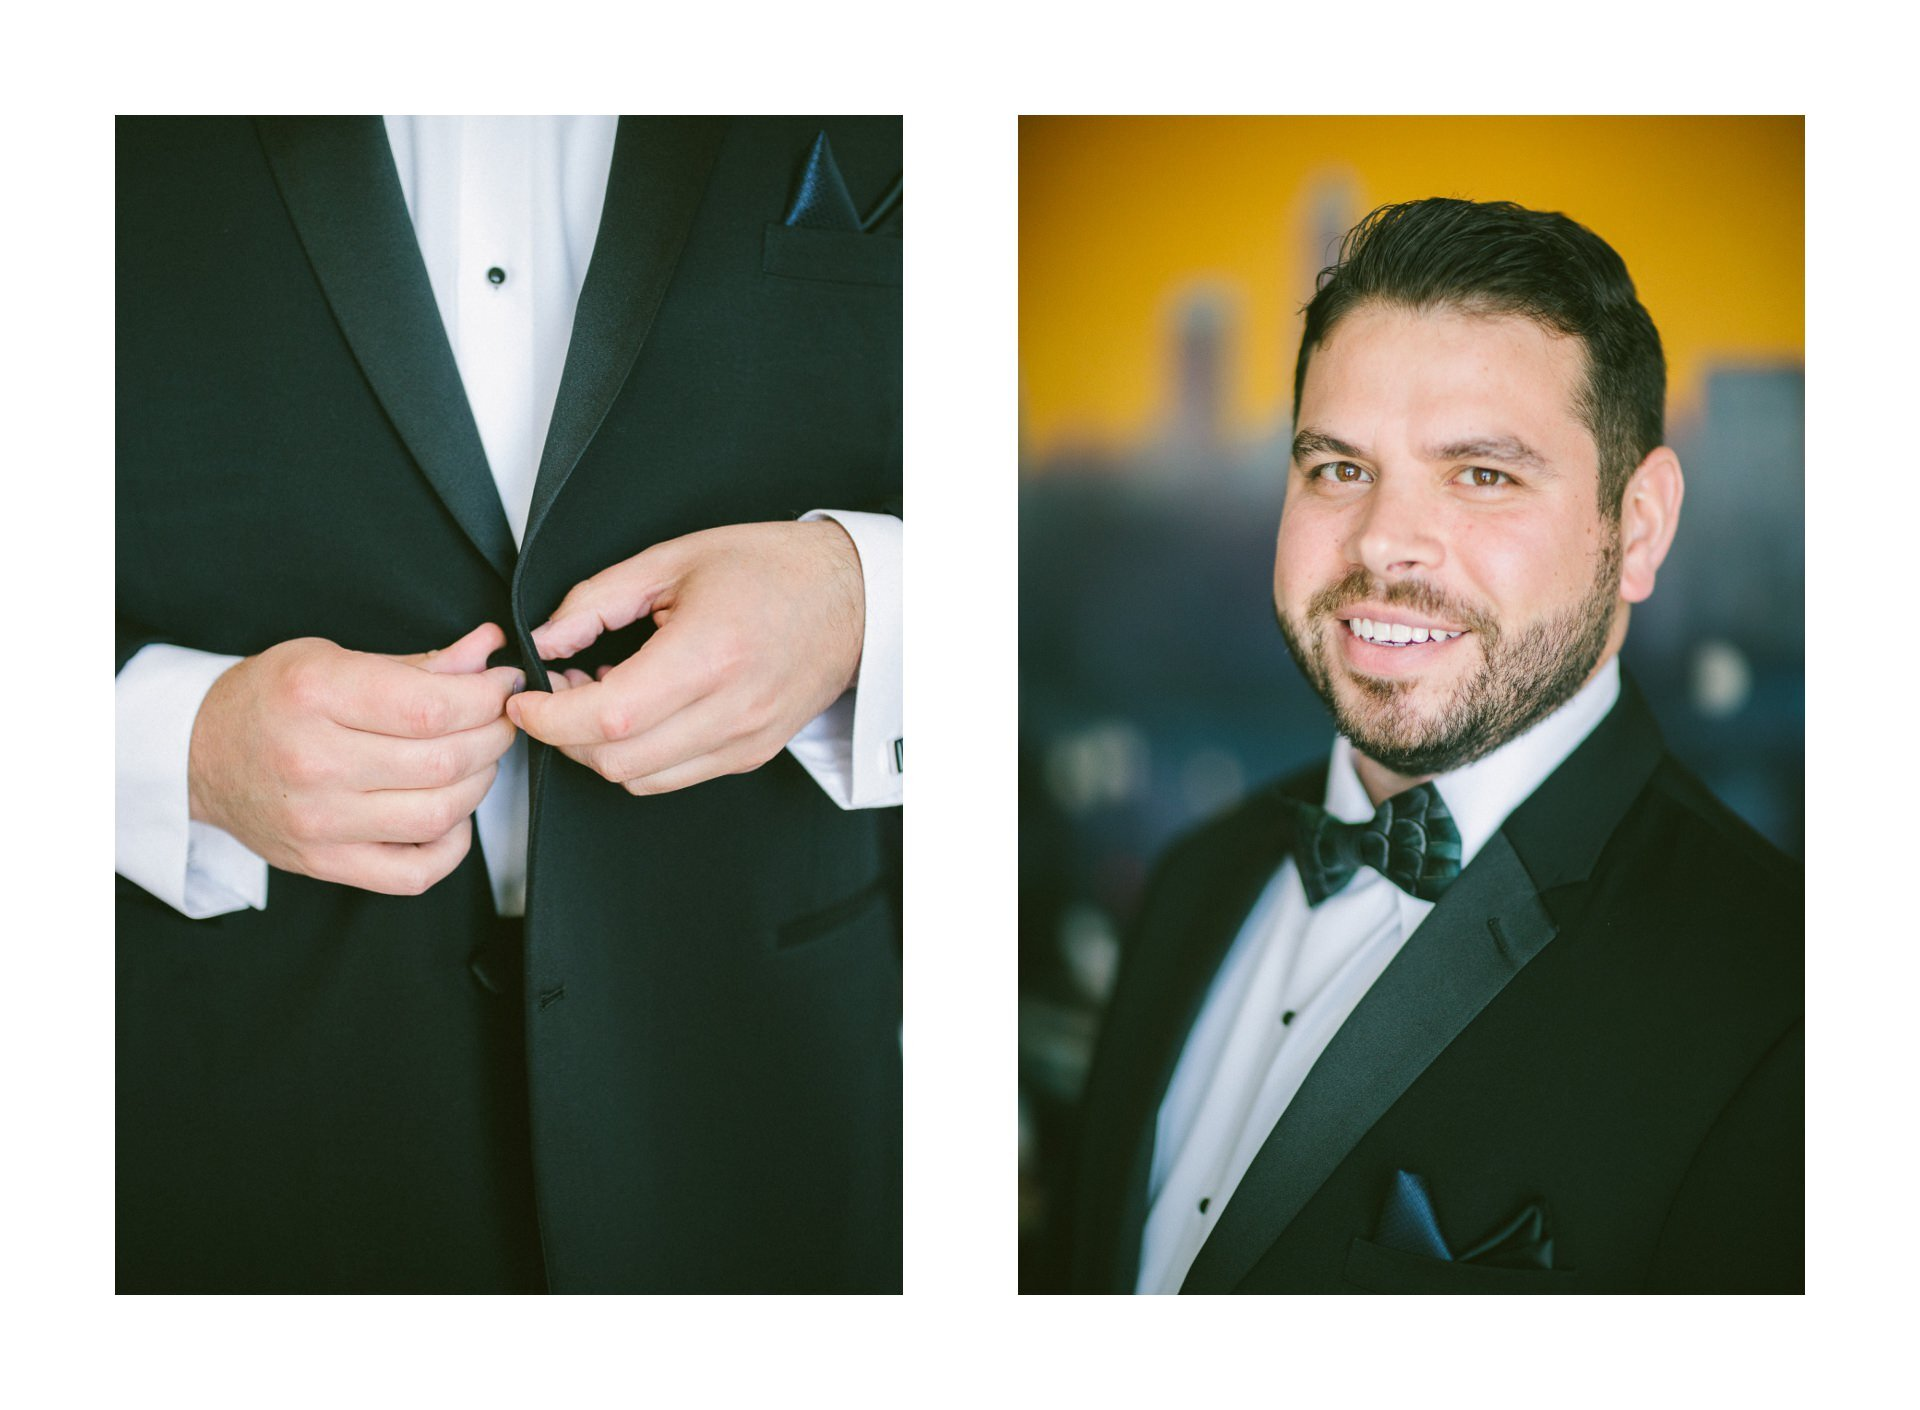 Playhouse State Theater Wedding Photographer in Cleveland 1 11.jpg